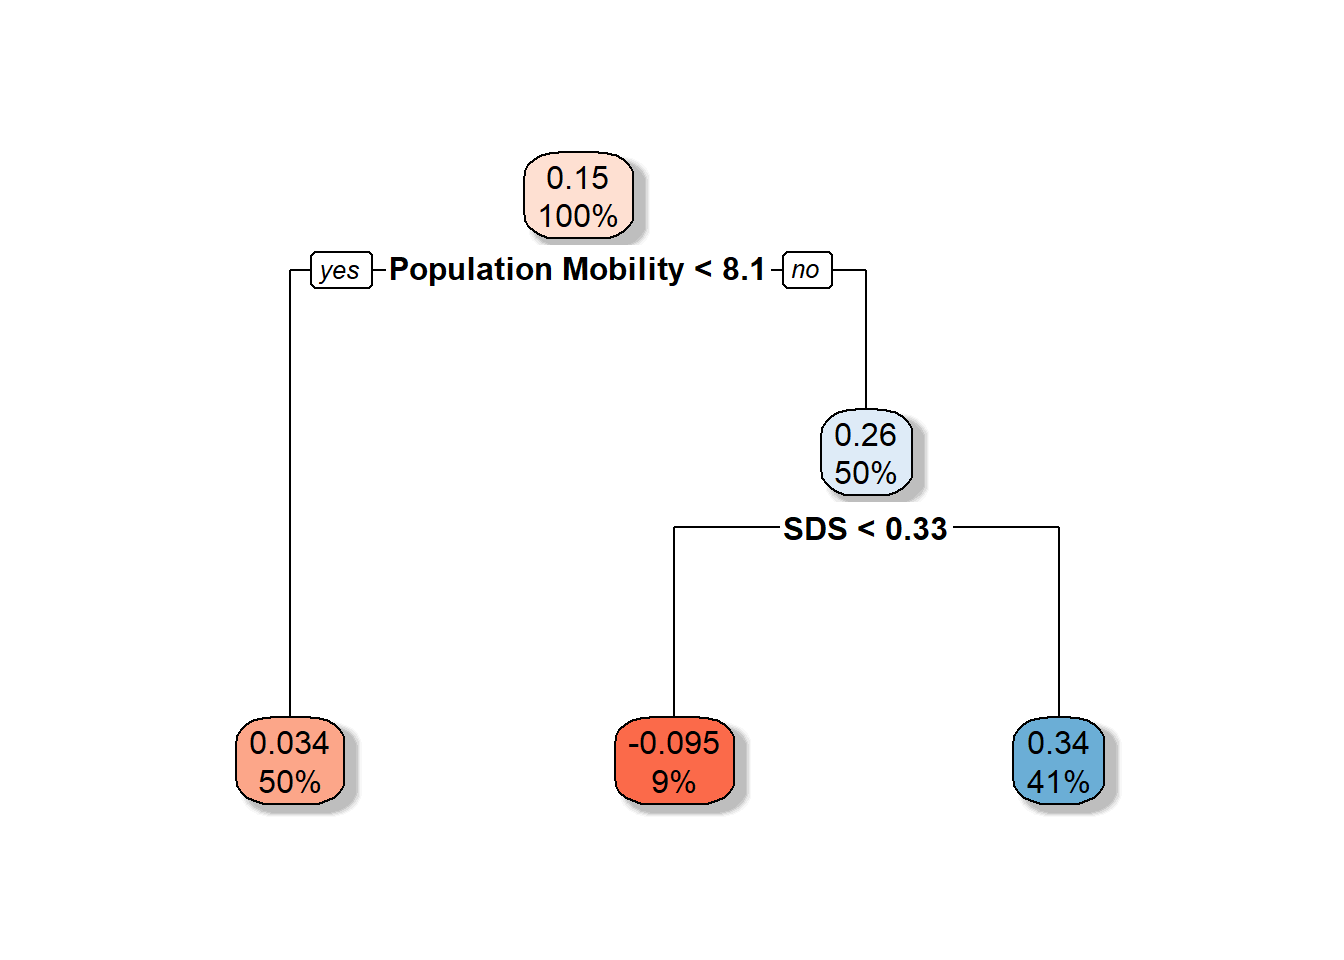 Population Mobility < 8.1 and SDS < 0.33. Described under the heading Decision Tree.